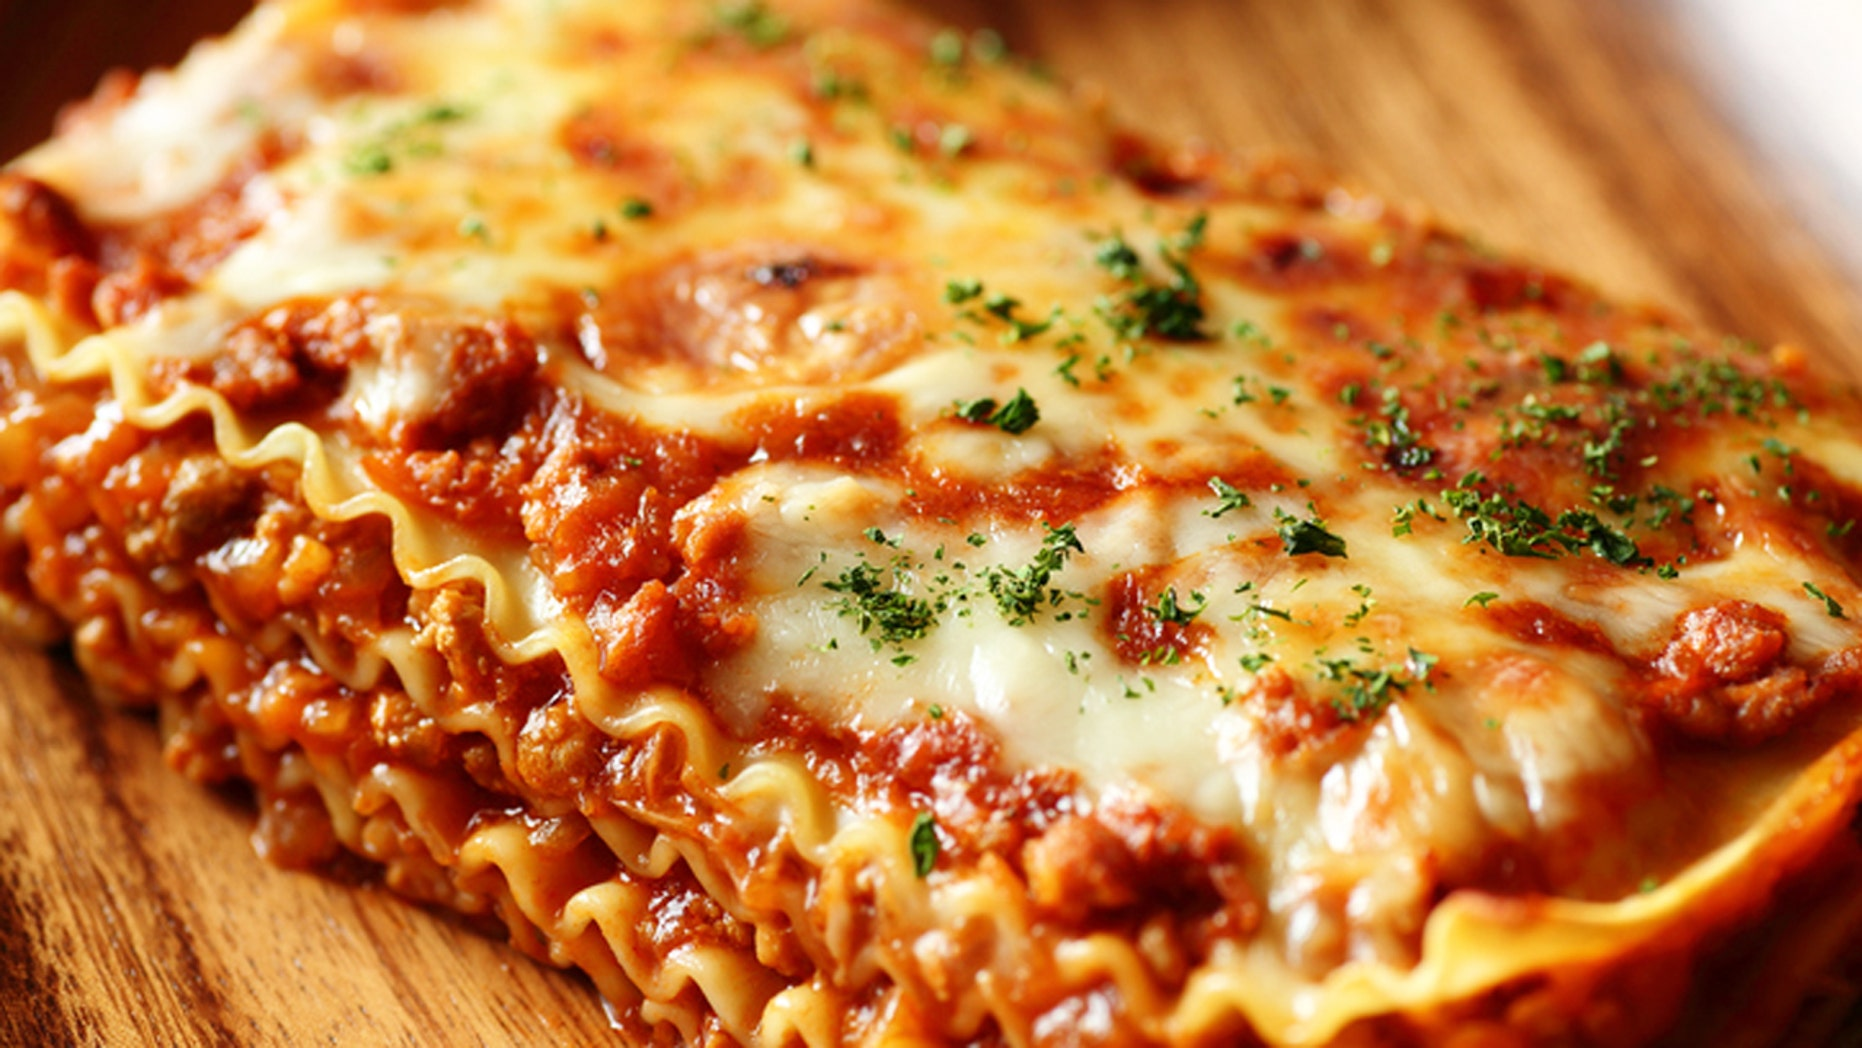 Why doesn't your lasagna look like this?